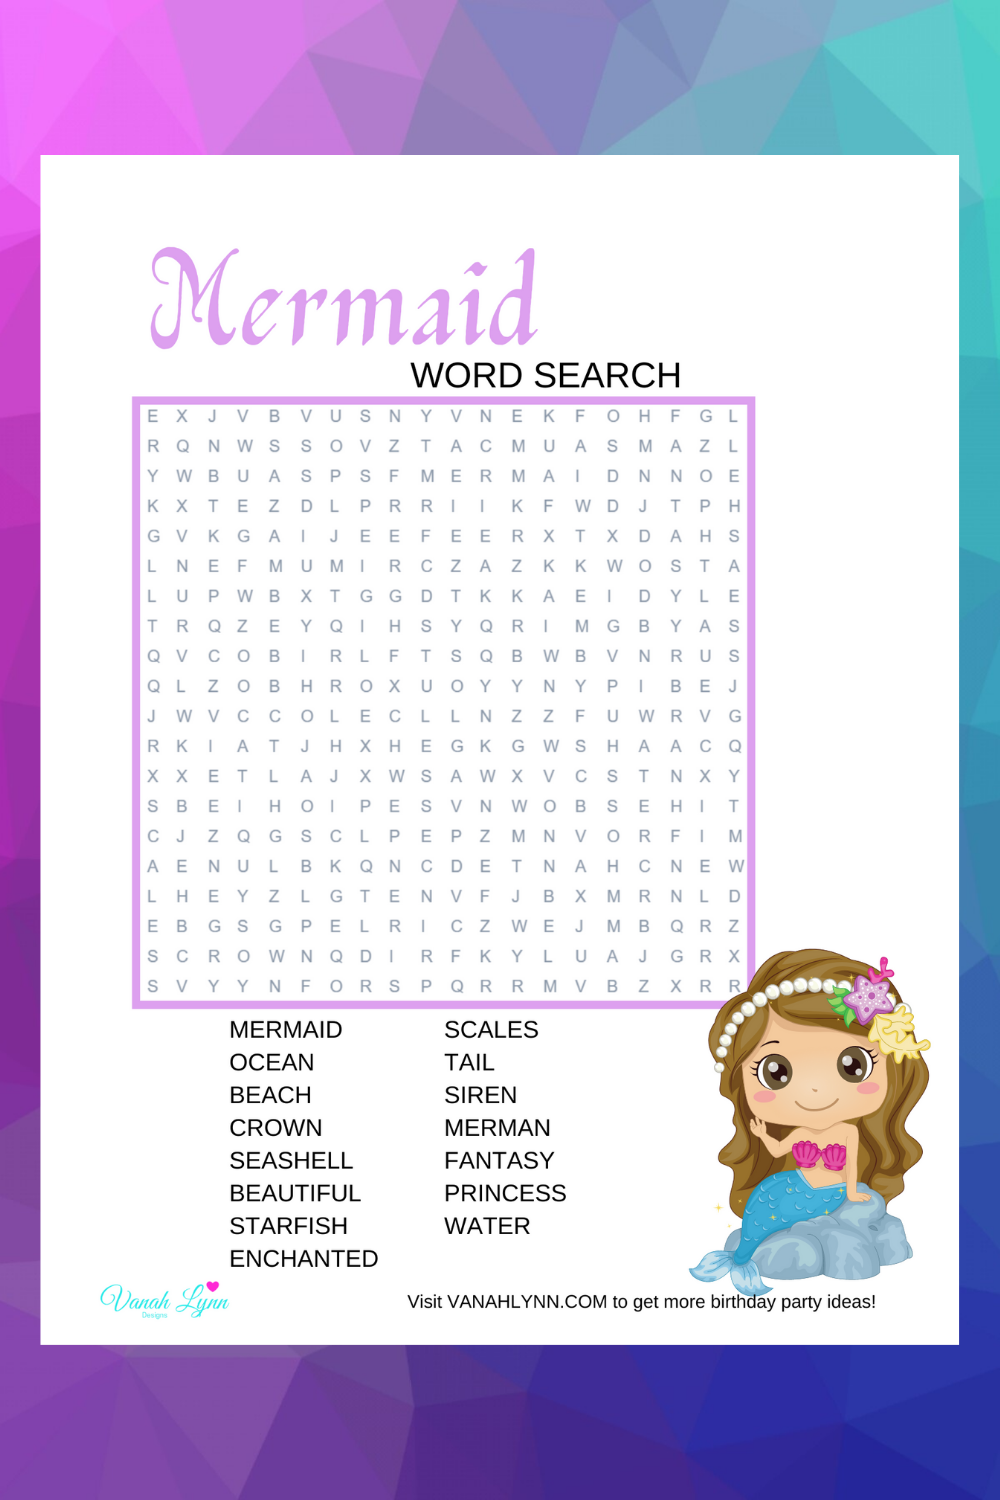 mermaid word search for little kids birthday party